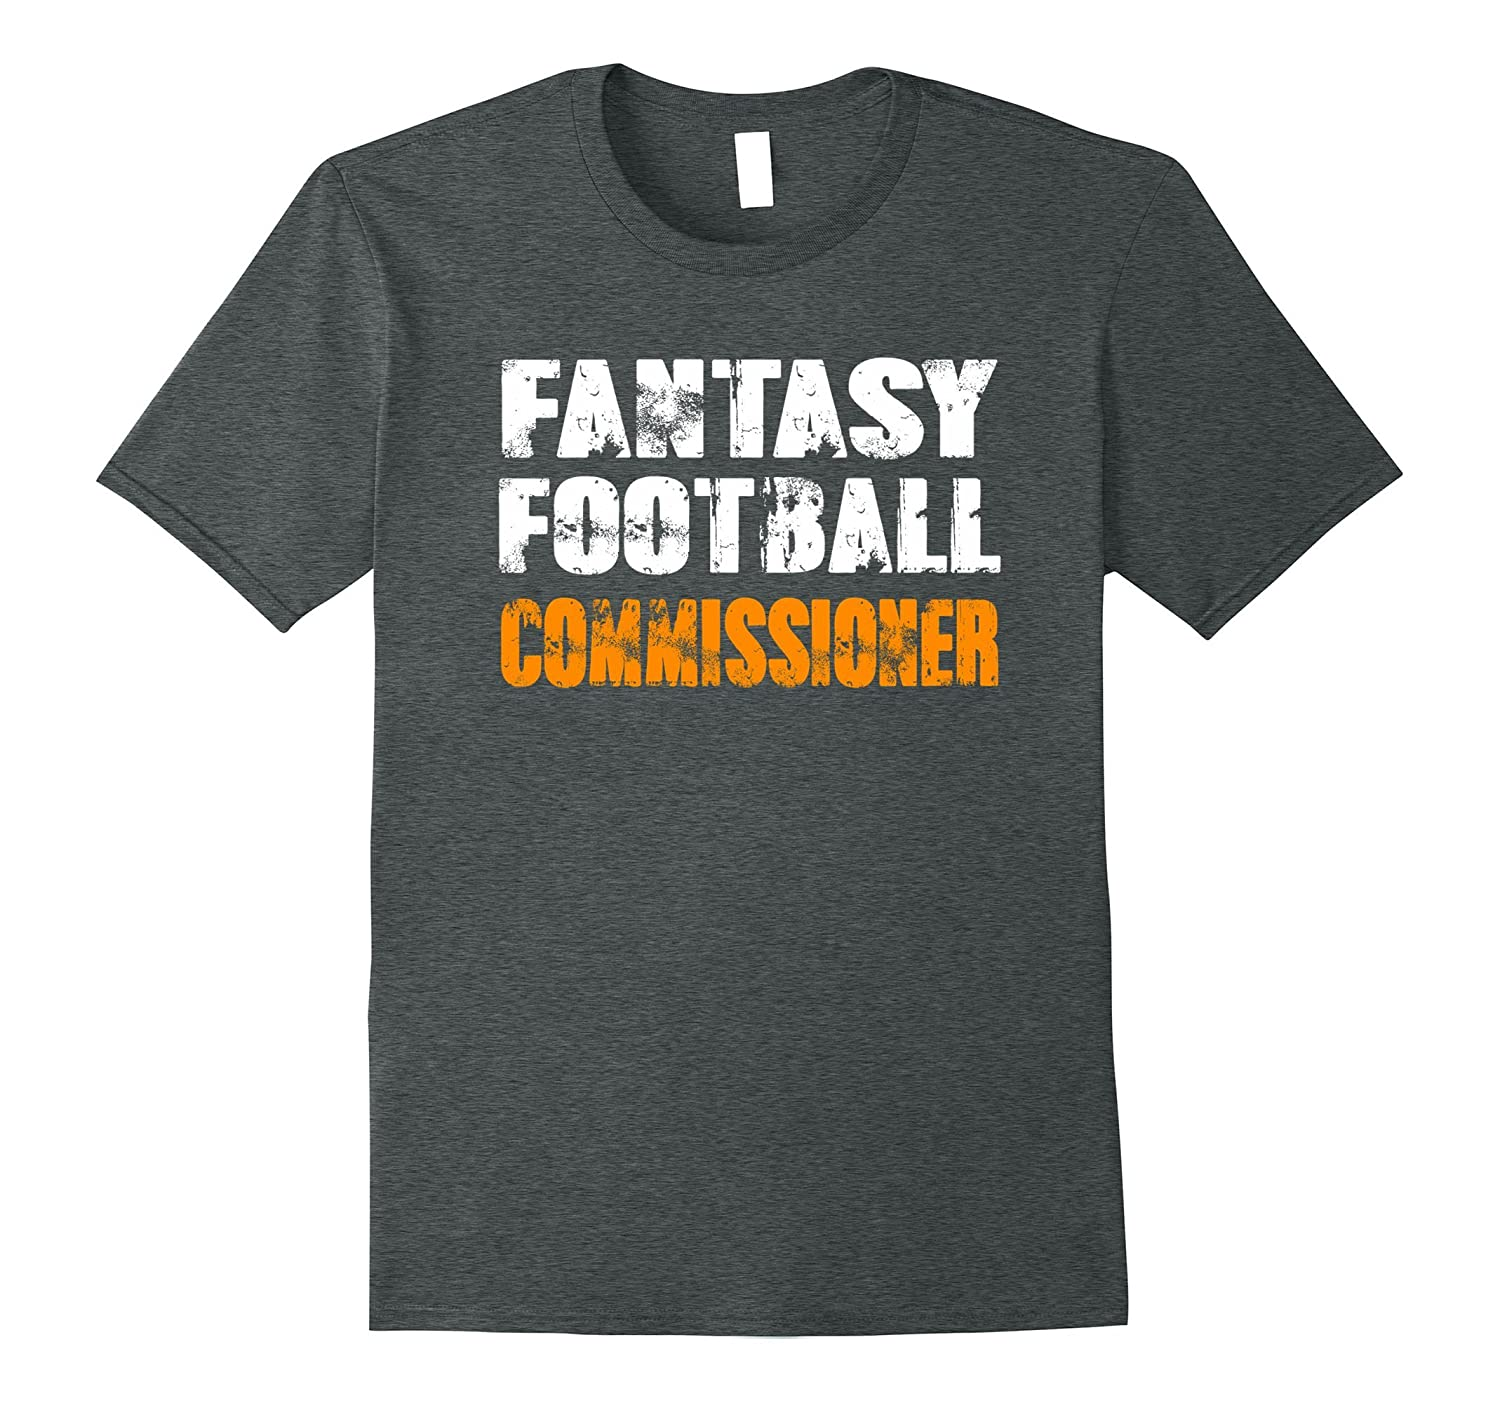 Funny Drink Play Fantasy Football Commissioner T-shirt